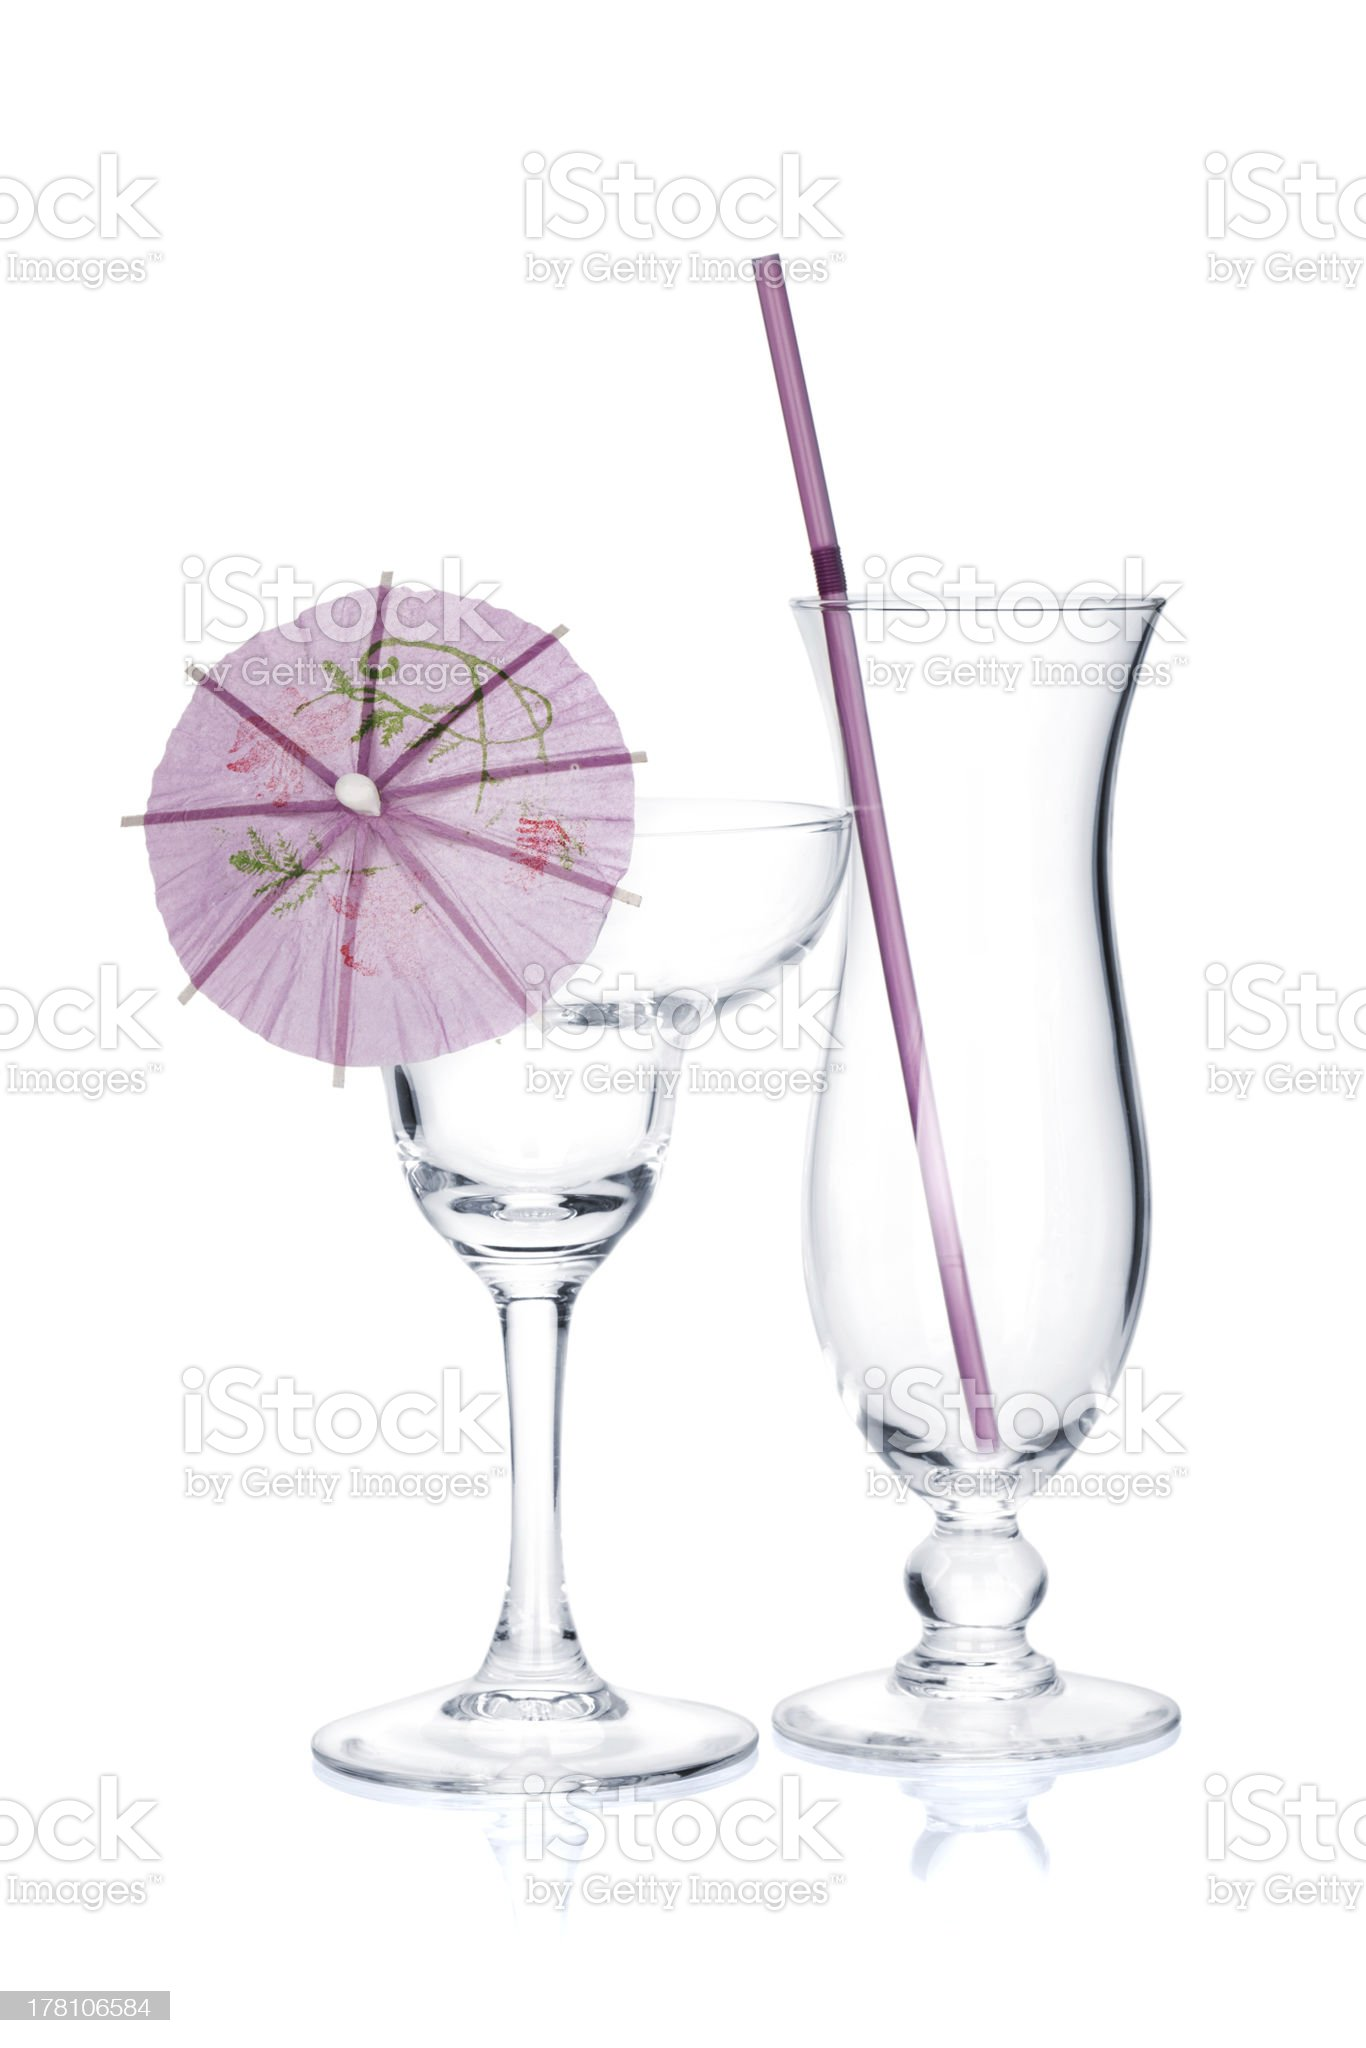 Cocktail glasses with drinking straw and umbrella royalty-free stock photo